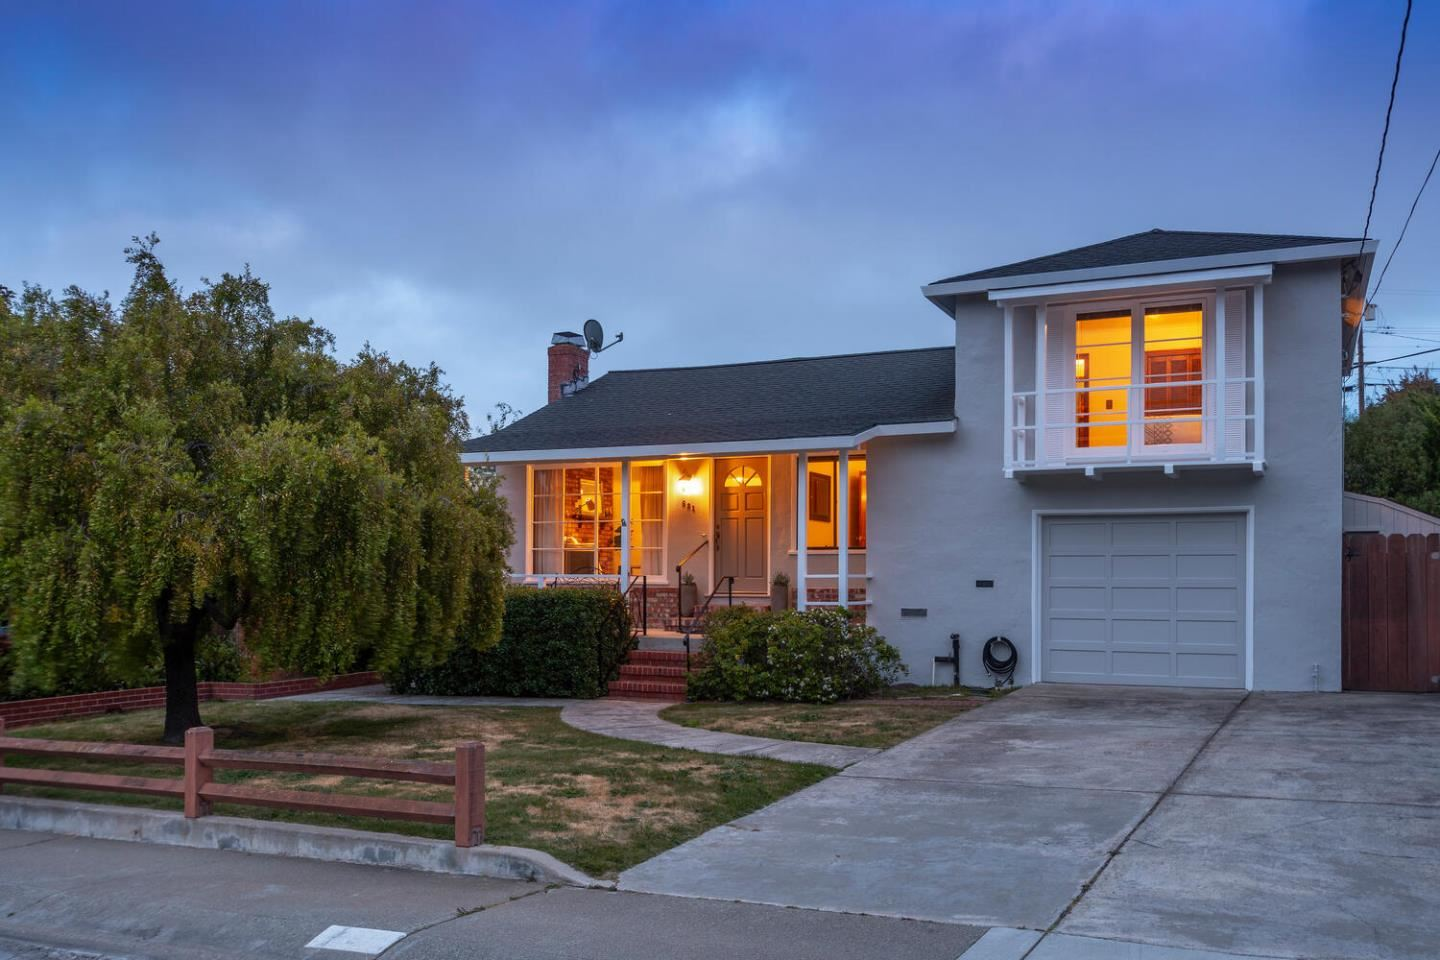 Photo for 631 Guadalupe AVE, MILLBRAE, CA 94030 (MLS # ML81840686)